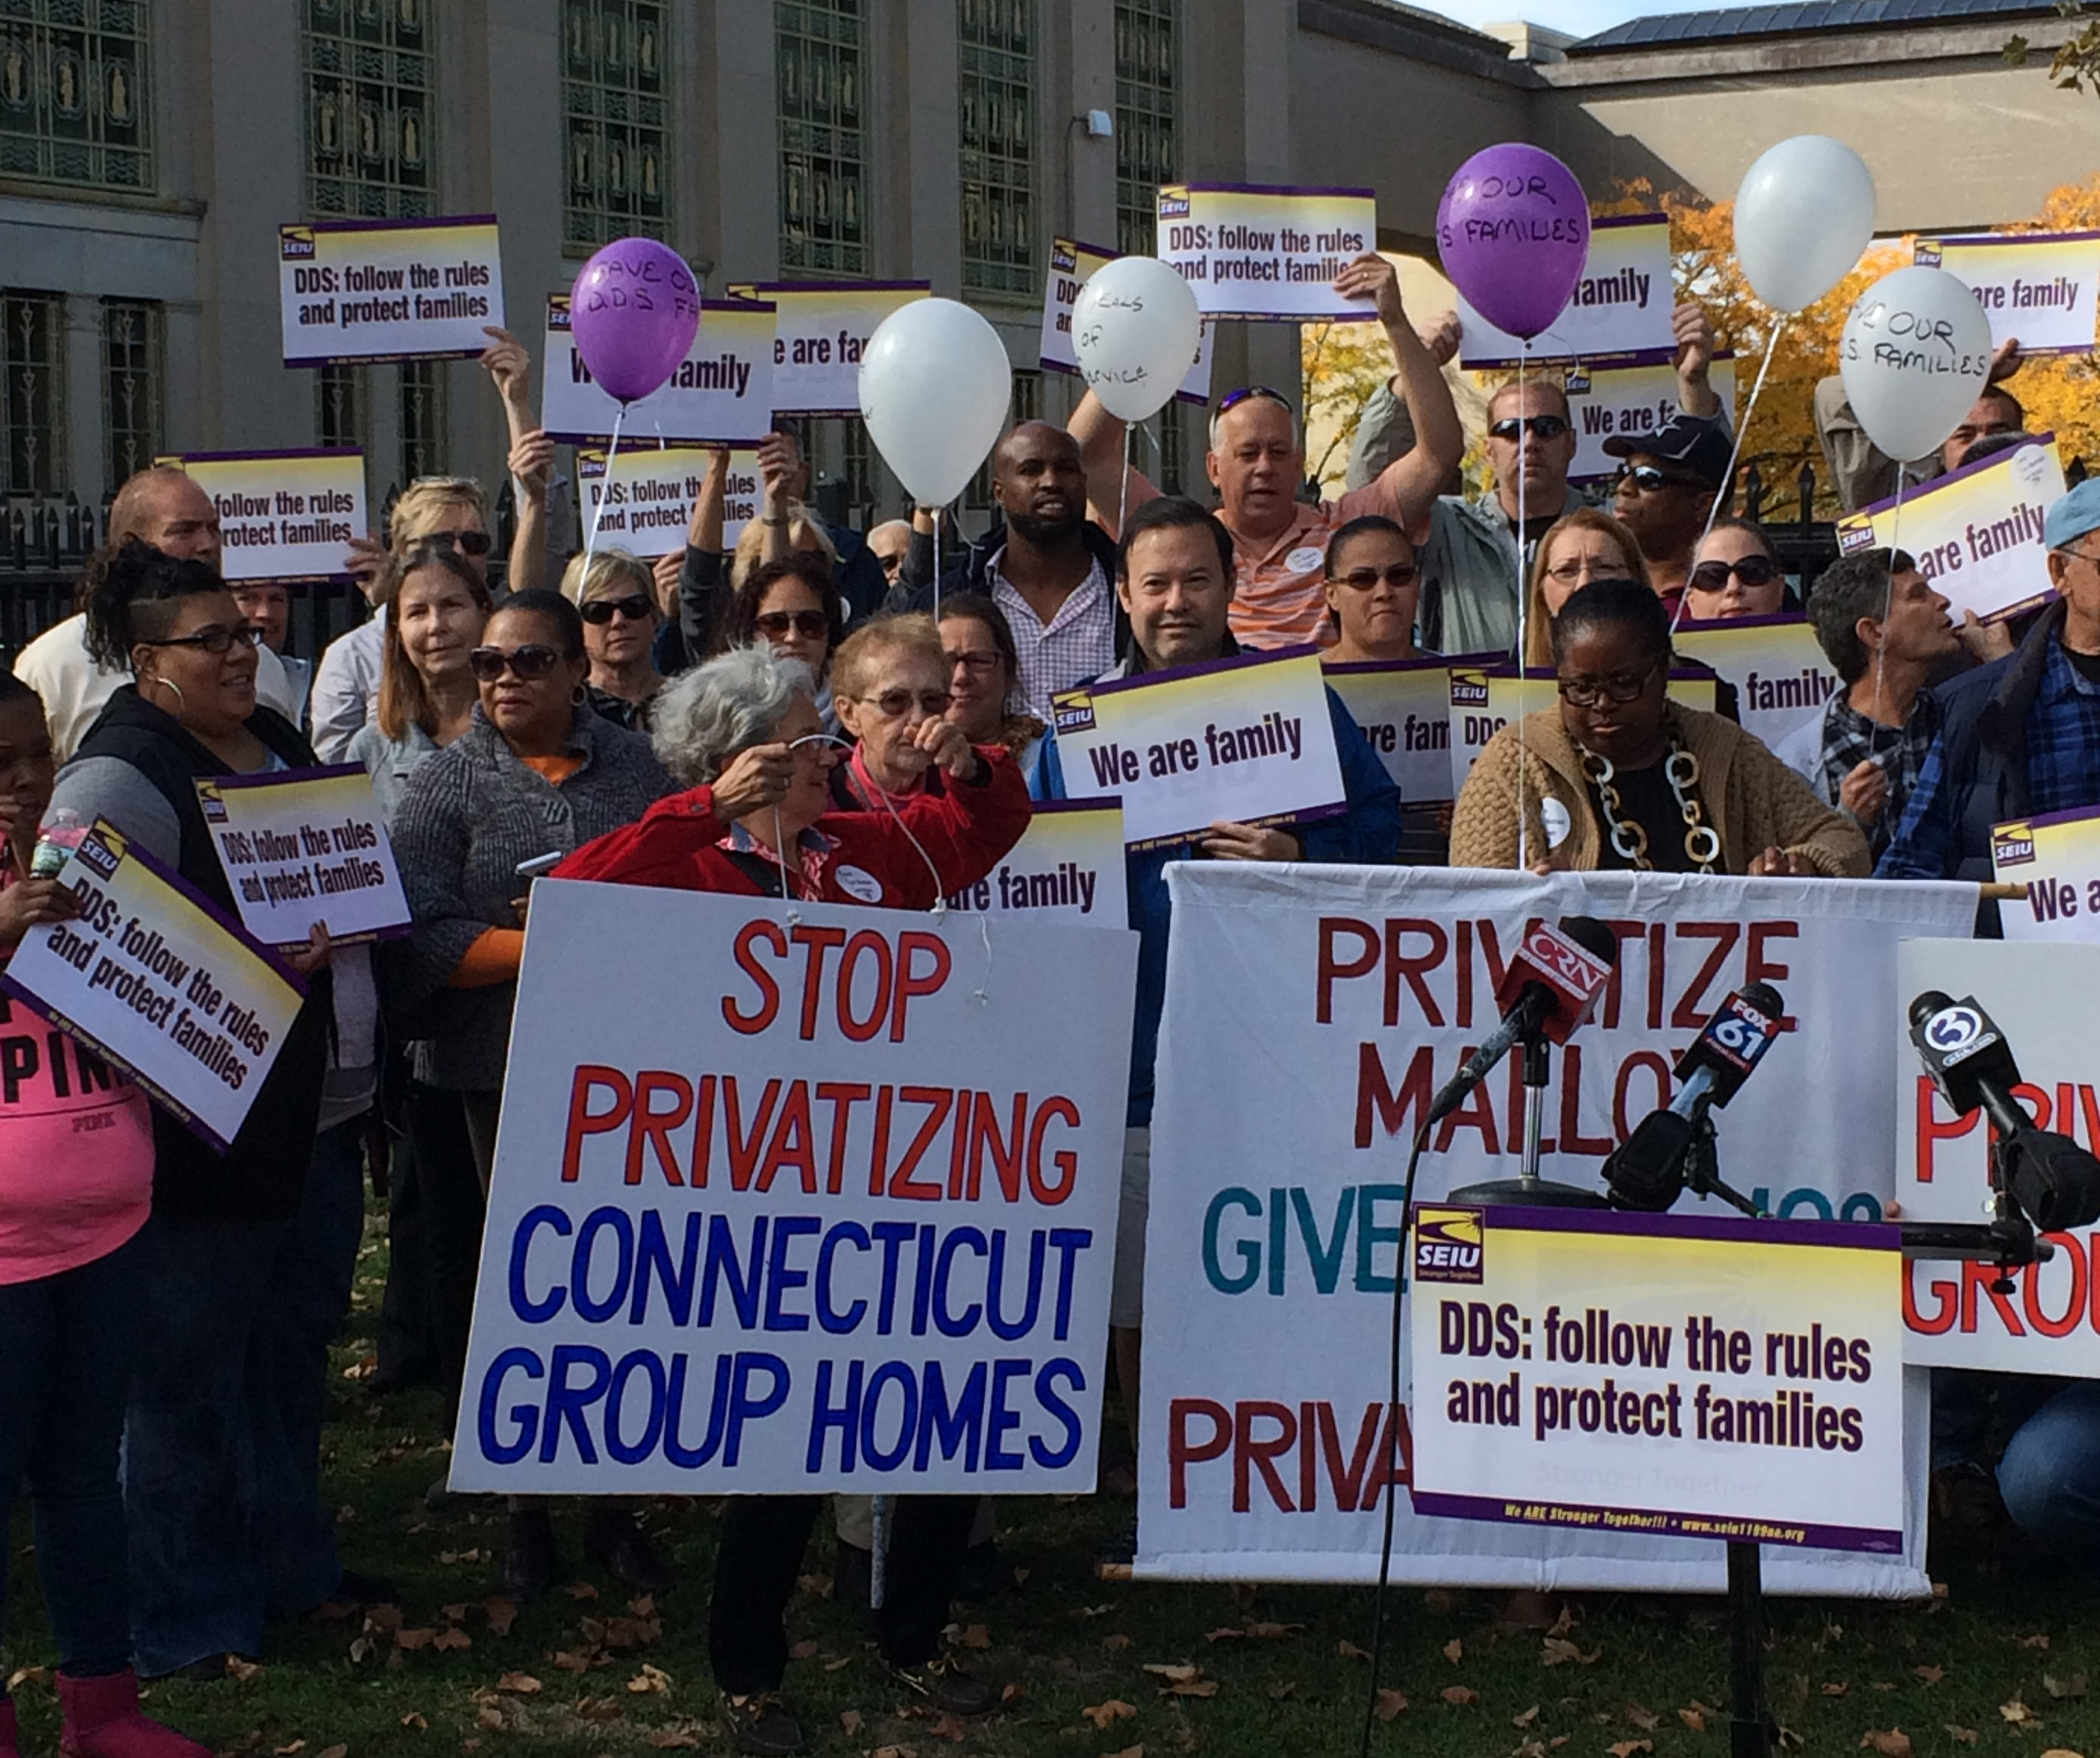 State employee unions suing to block group home privatization